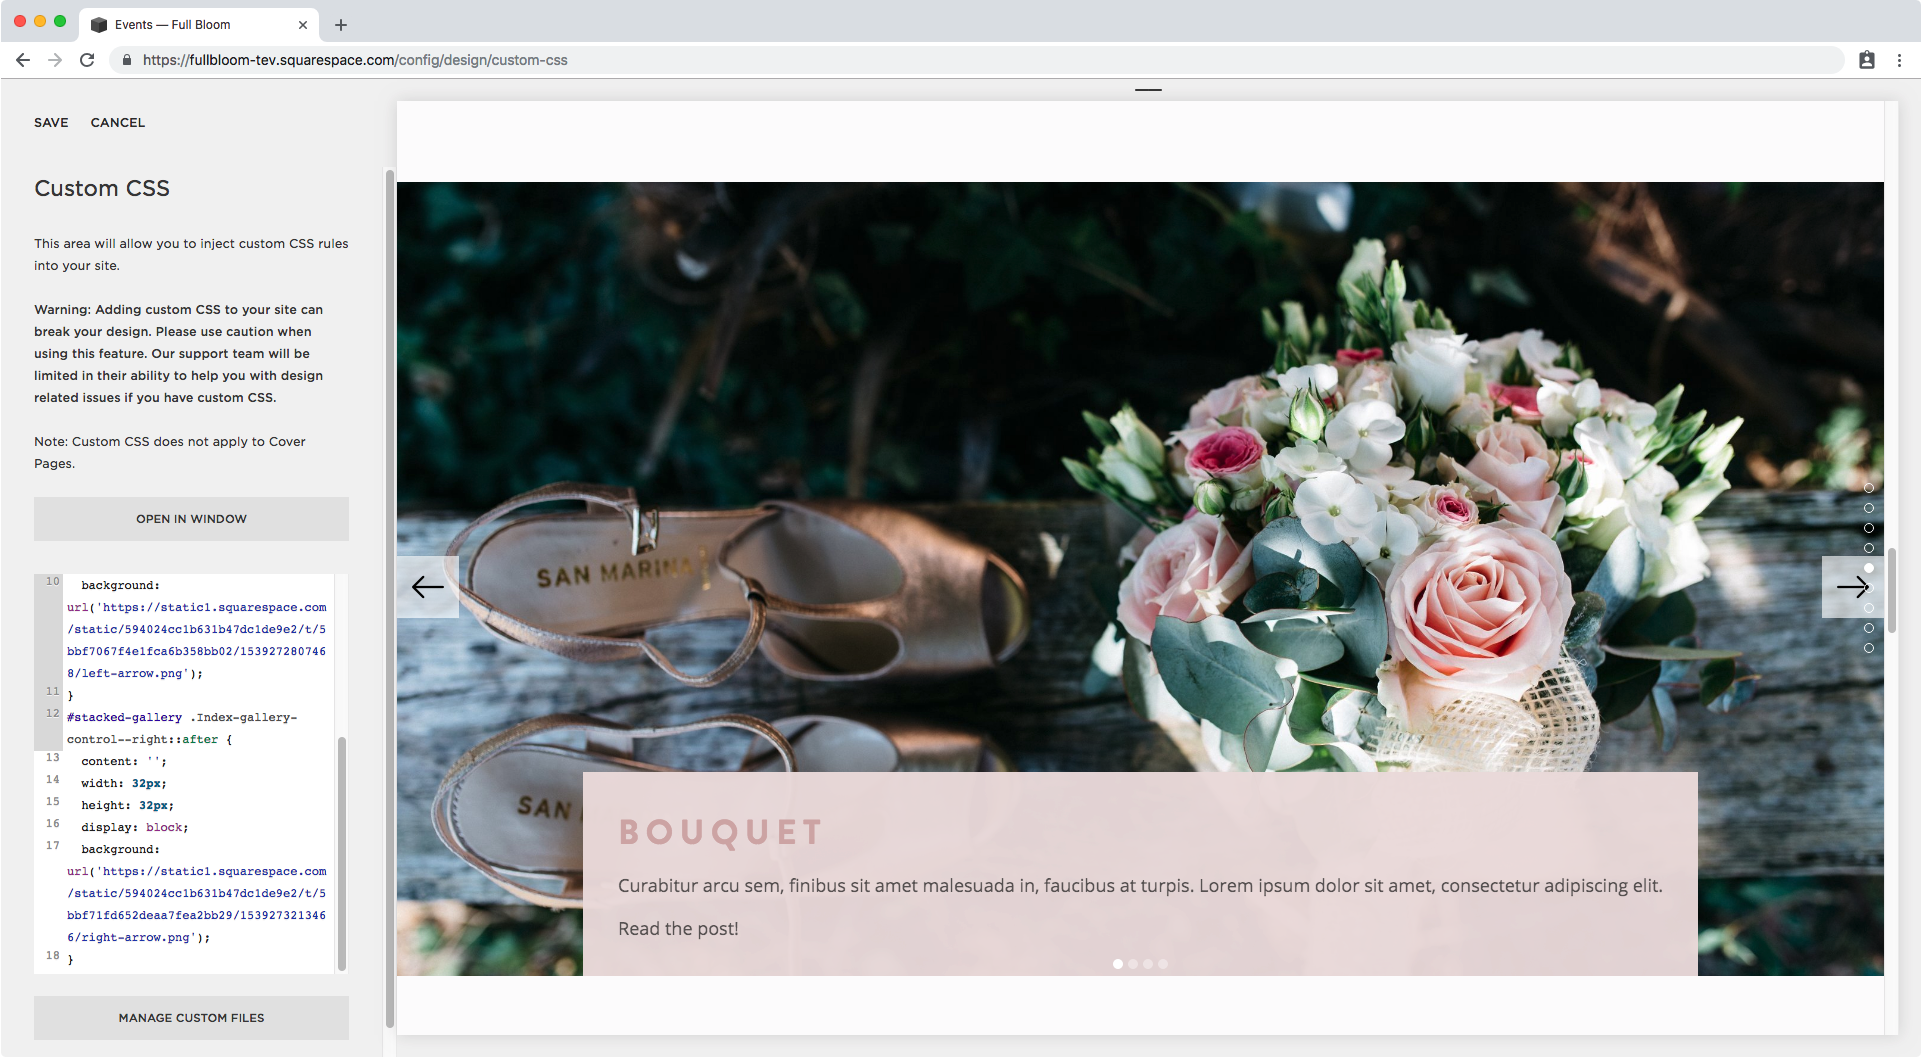 14. Adding custom arrows to index gallery slideshow in Squarespace.png